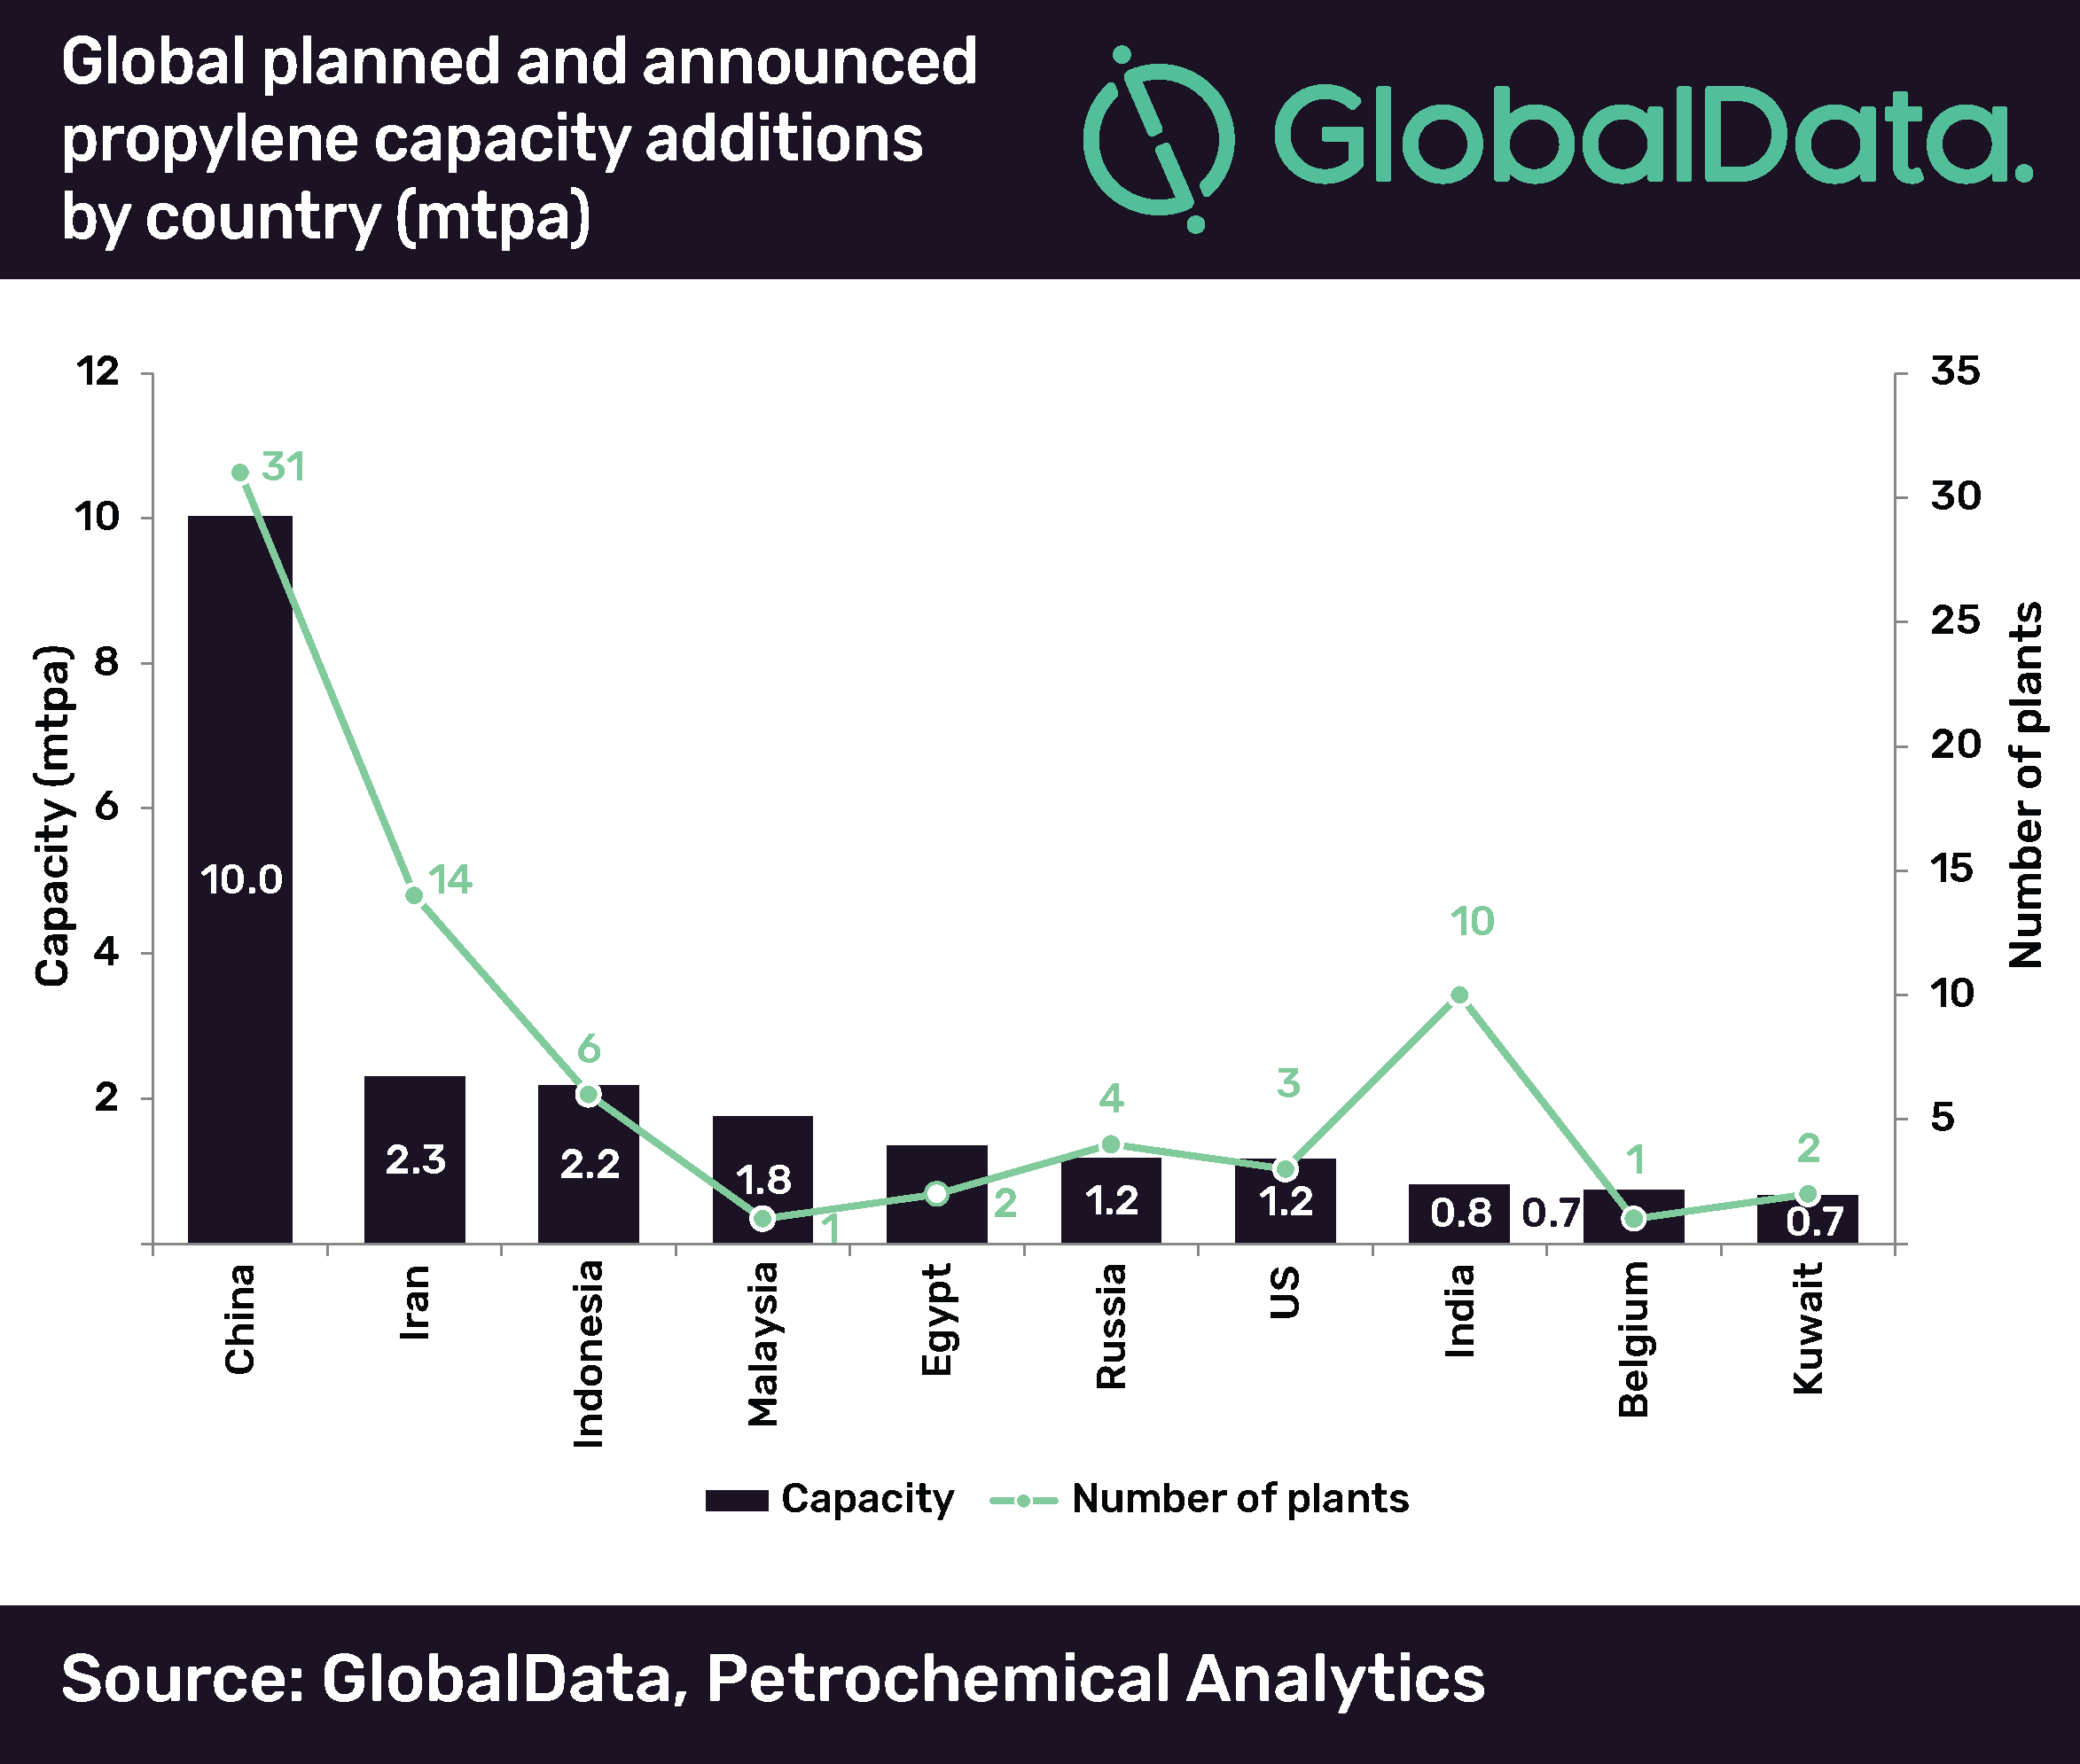 China will continue to lead global propylene capacity growth through 2026